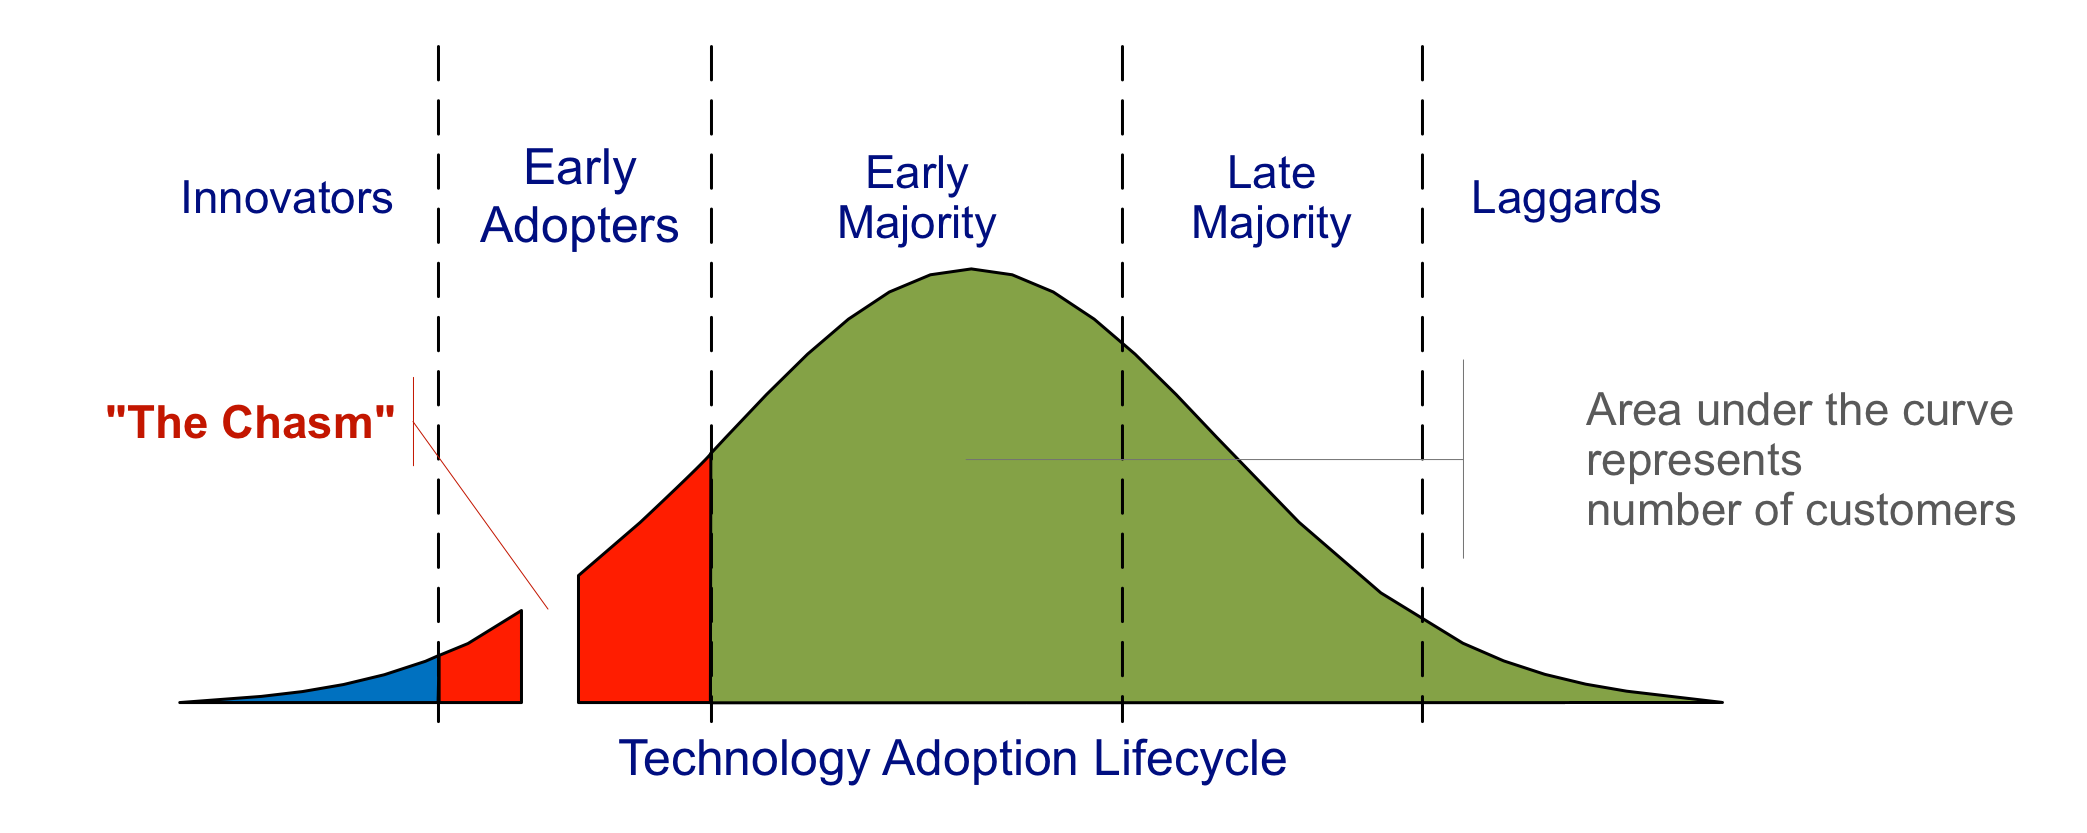 the technology life cycle upload org commons d d3 technology adoption lifecycle png